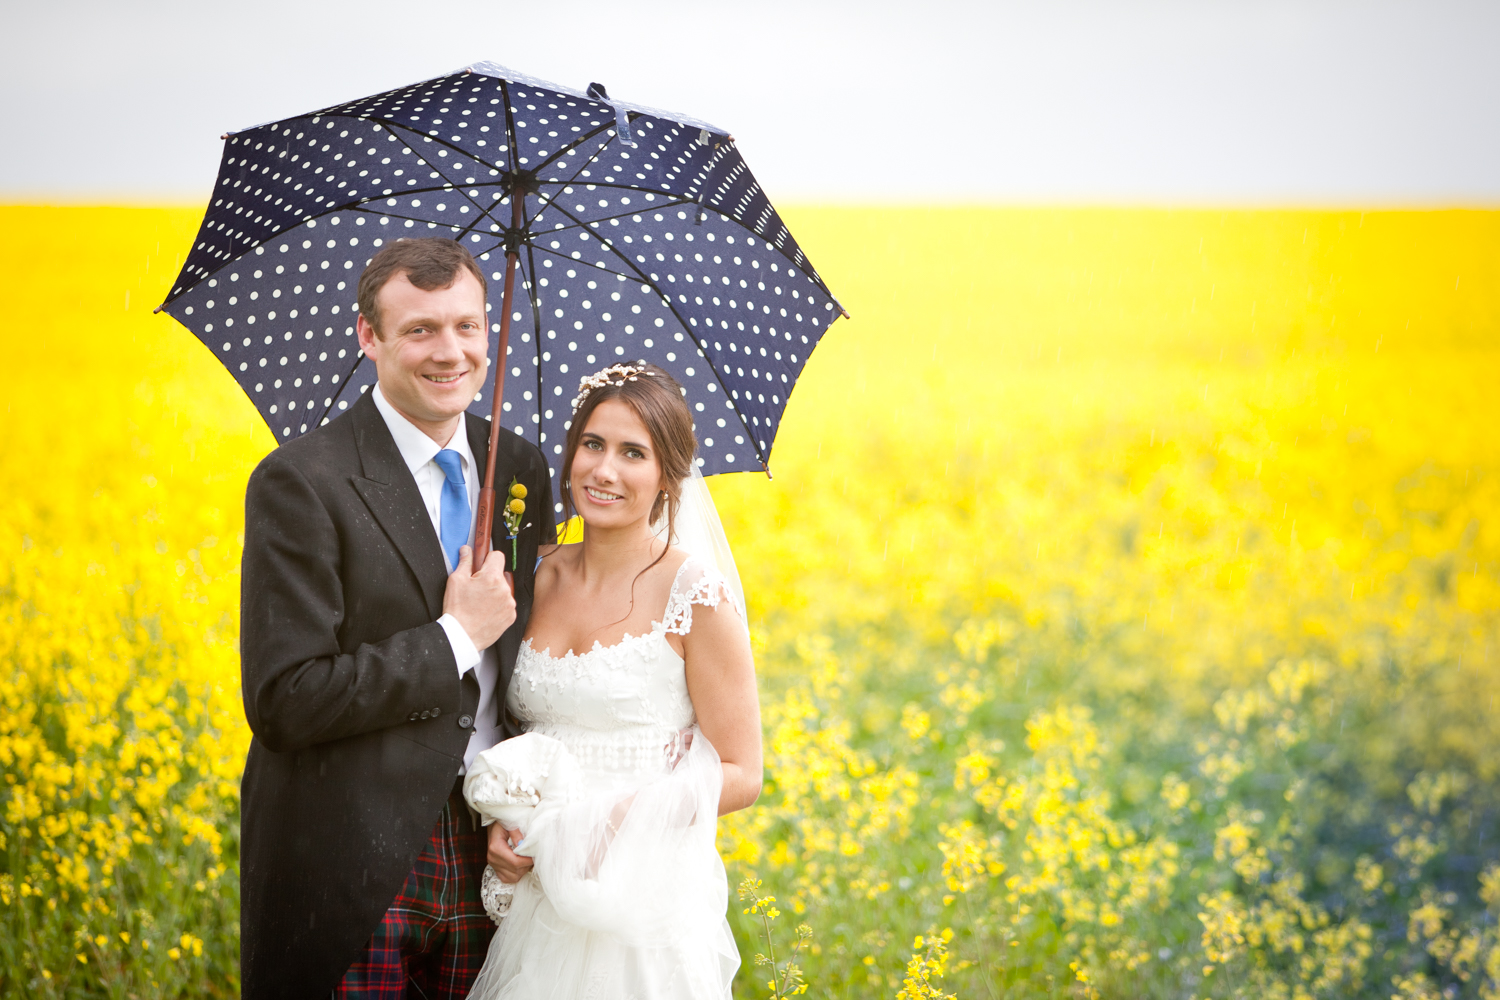 PICTORIAL_BERWICK_WEDDING_FARM_MARQUEE_RAIN_WEATHER_ROTHBURY_MINI_STYLE--2.jpg